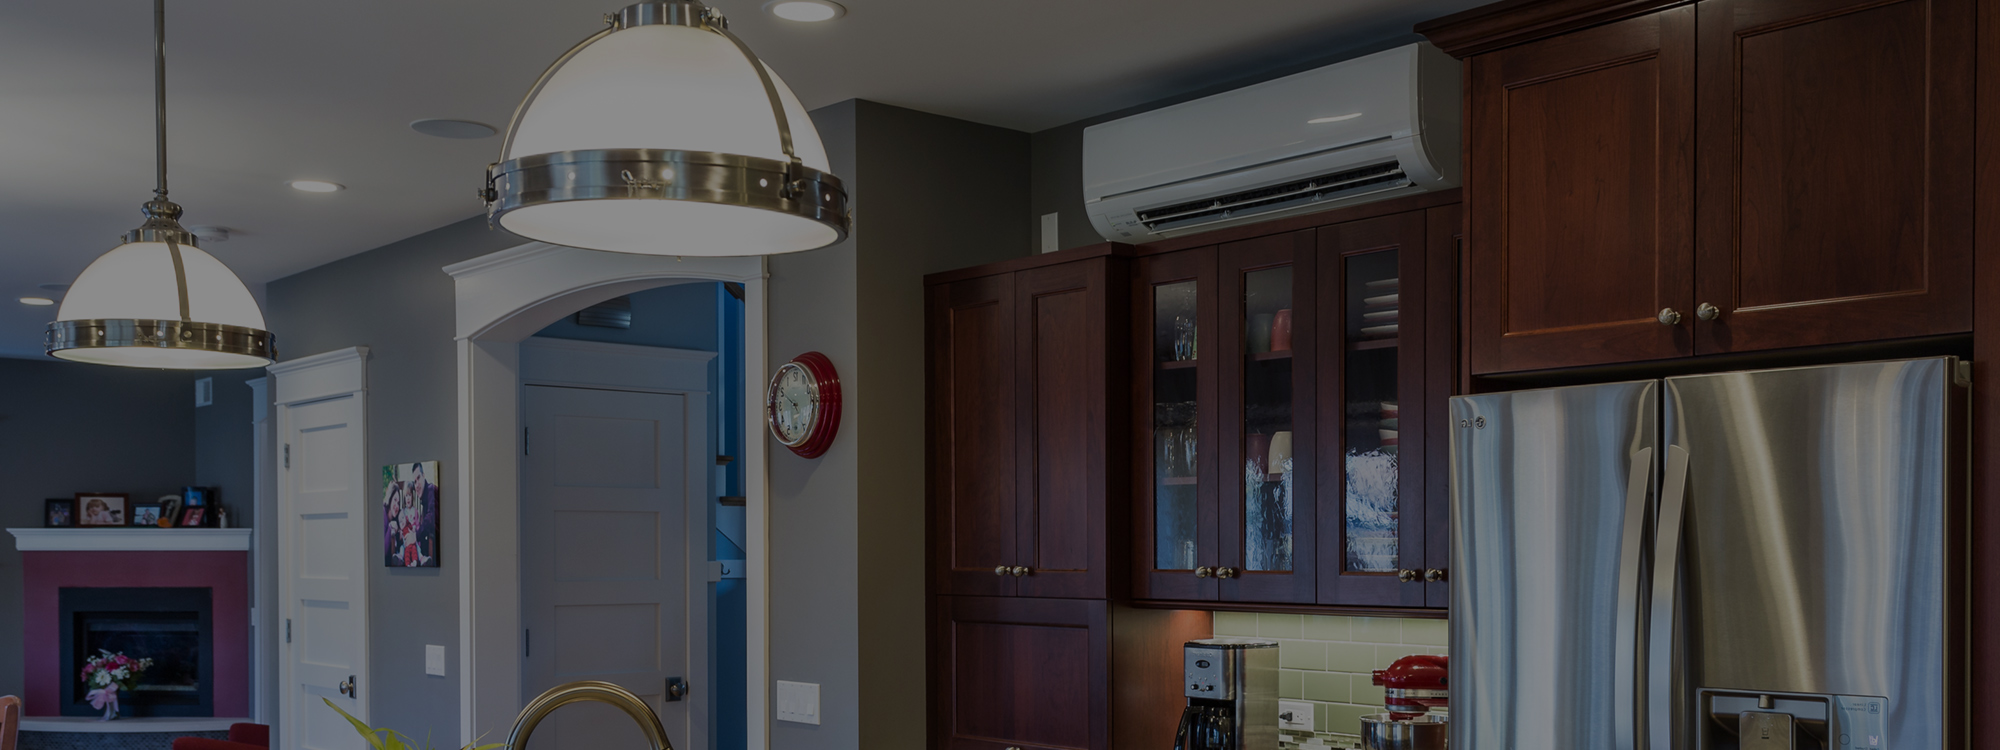 | William C. Fox Heating & Air Conditioning | Burlington County, NJ